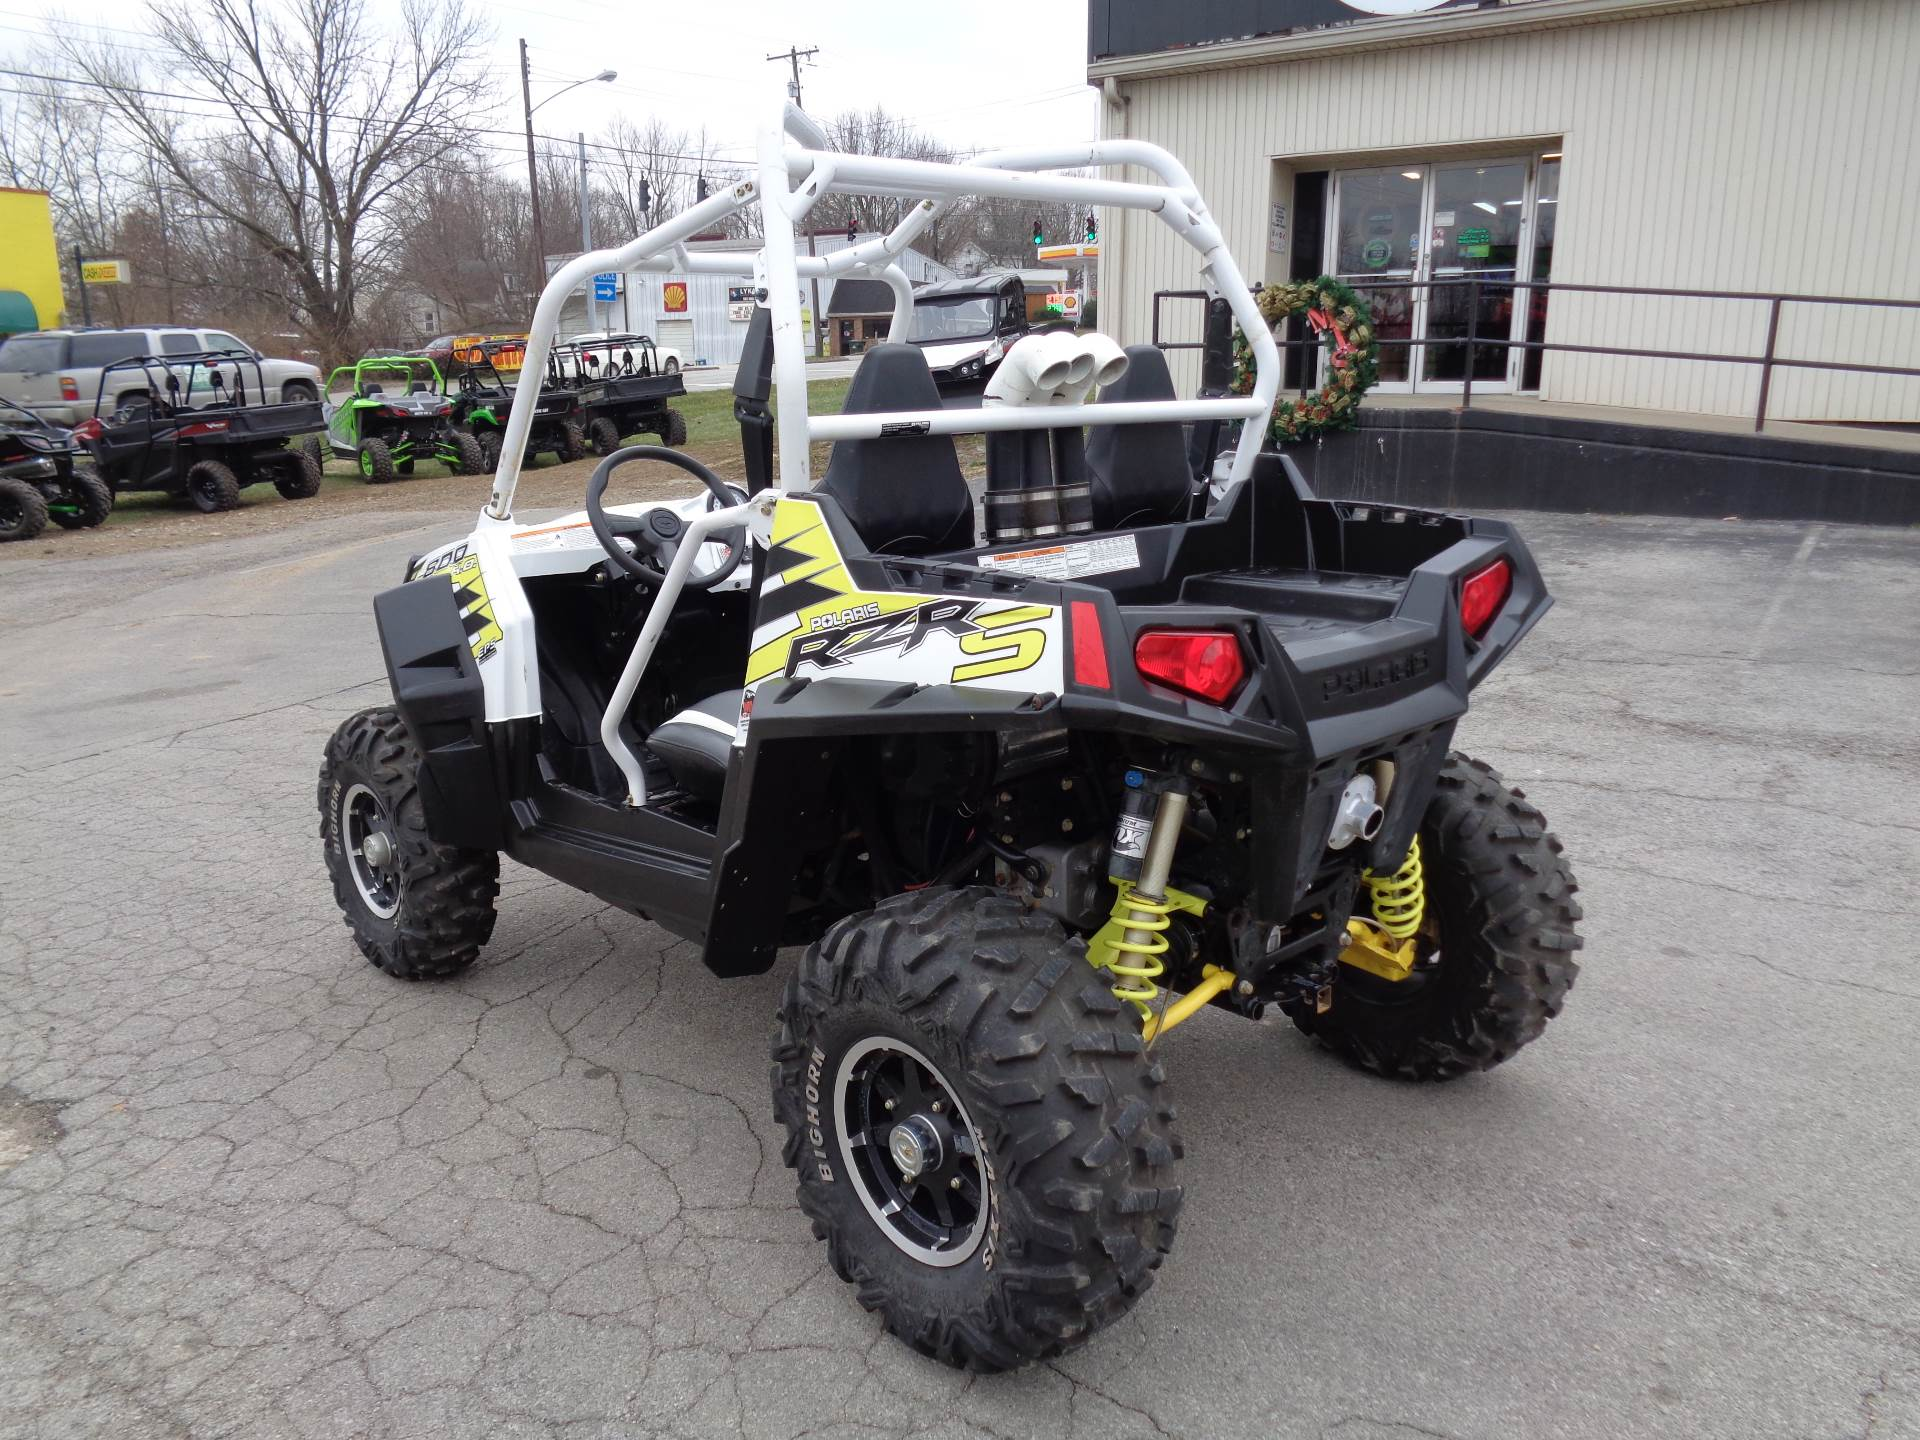 2014 polaris rzr s 800 eps le ebay. Black Bedroom Furniture Sets. Home Design Ideas